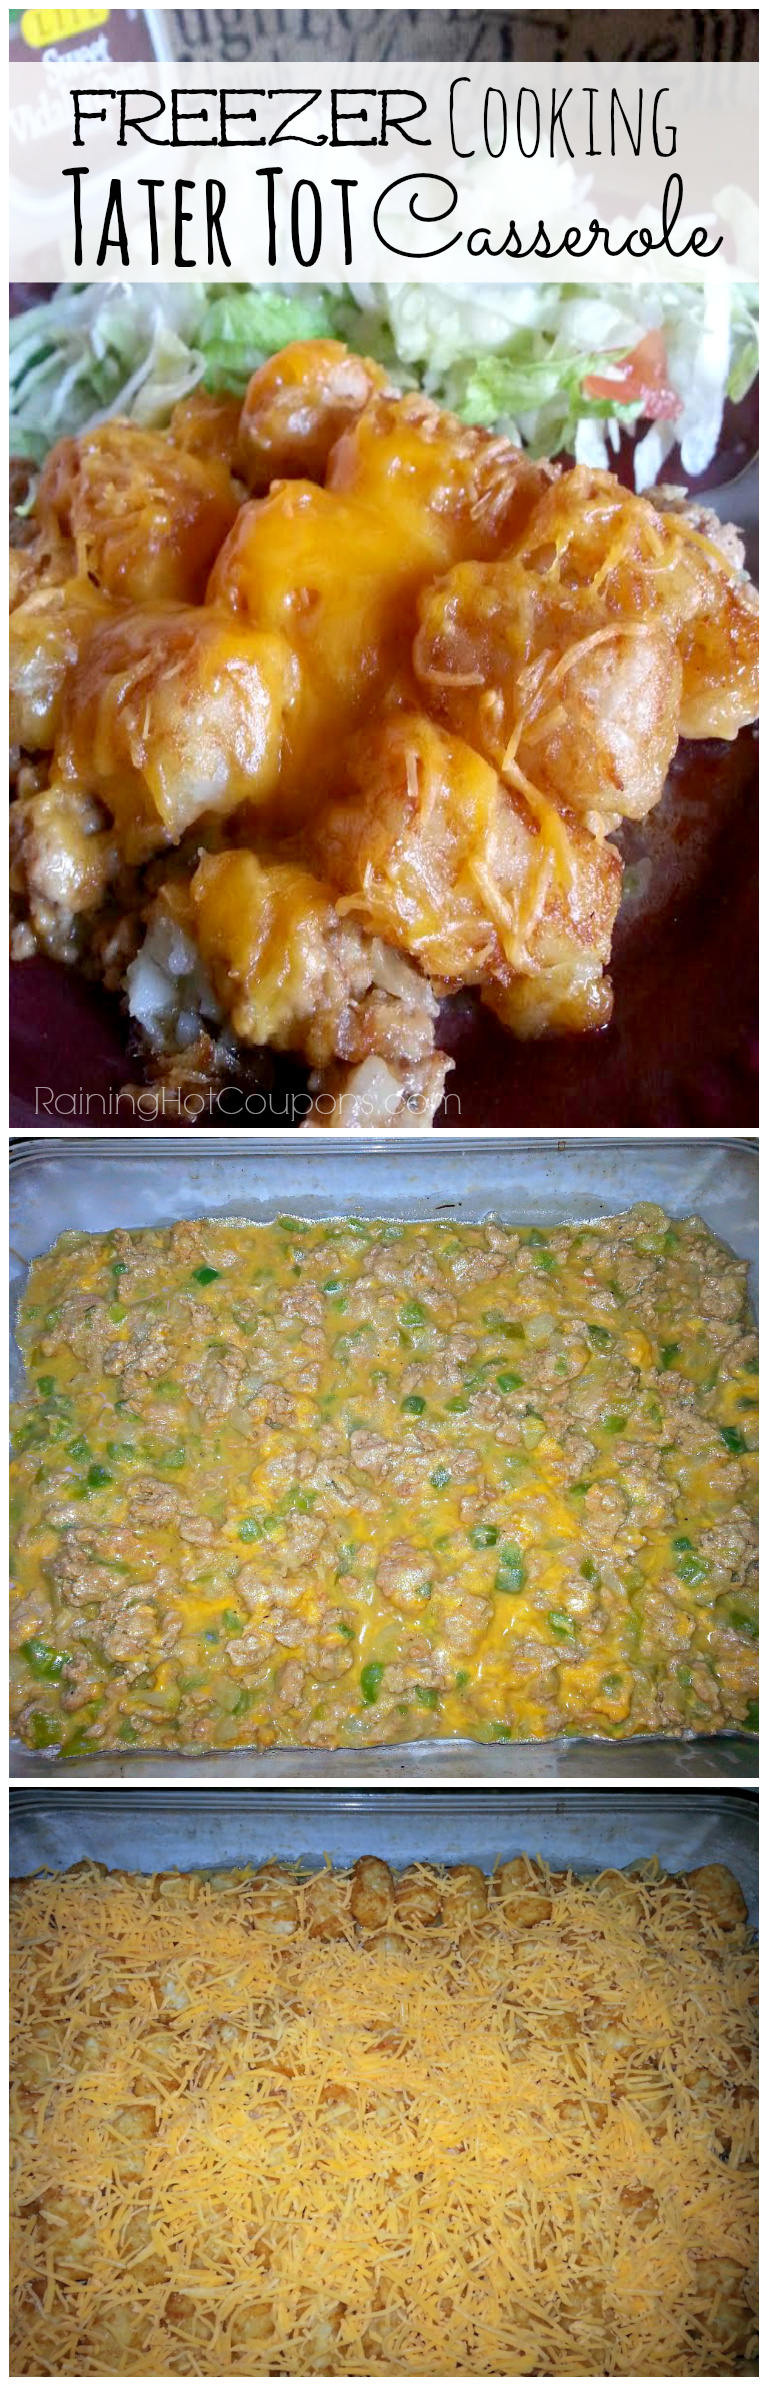 tater.png Tater Tot Casserole (Freezer Cooking Meal)